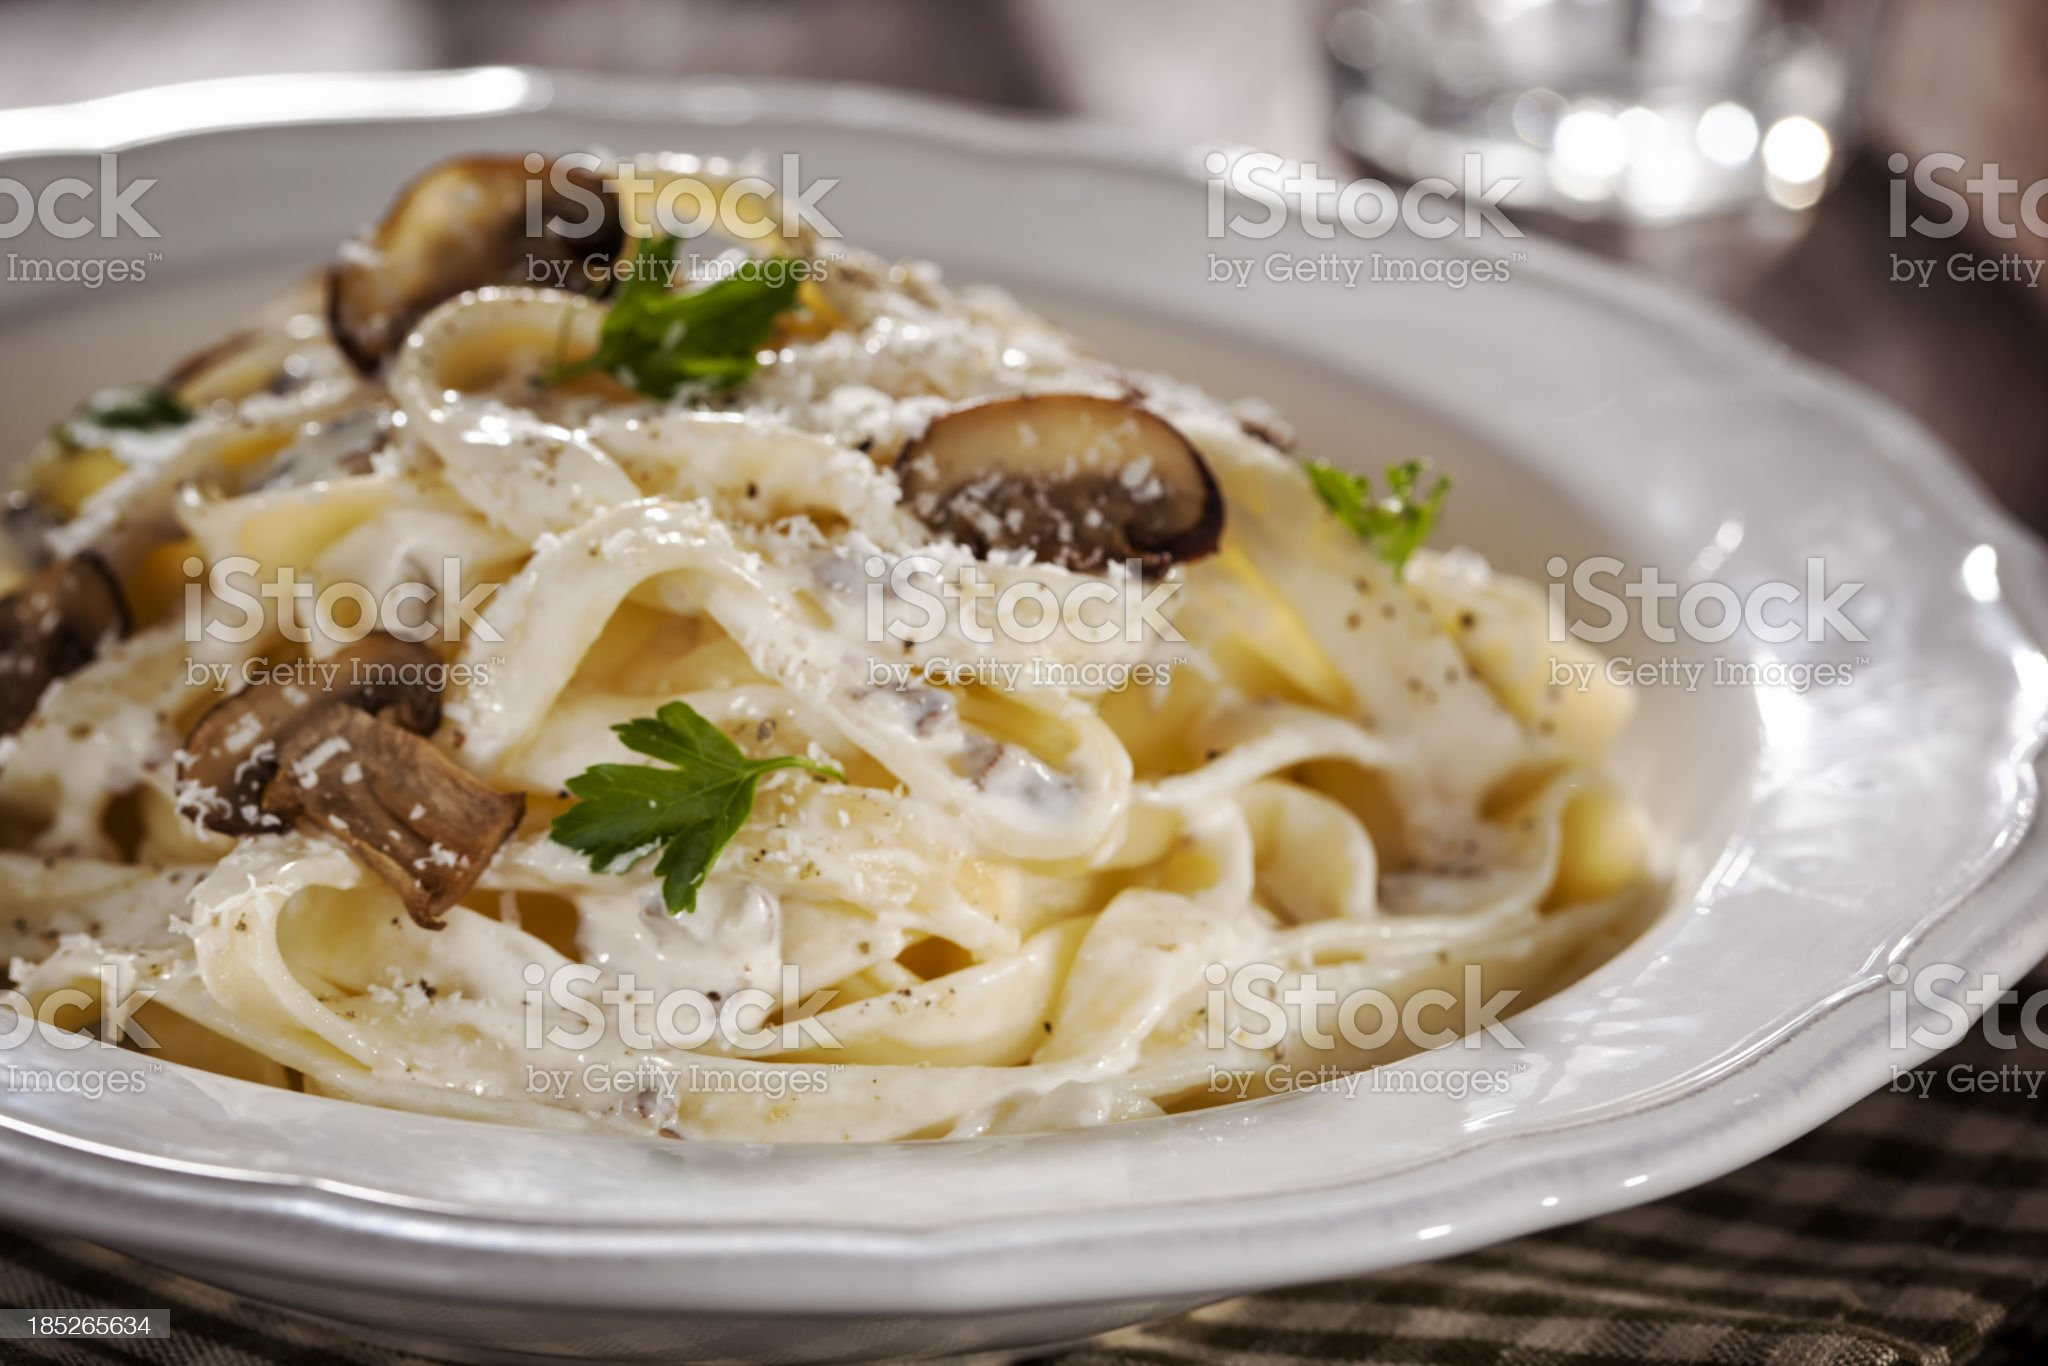 Tagliatelle with Mushrooms royalty-free stock photo